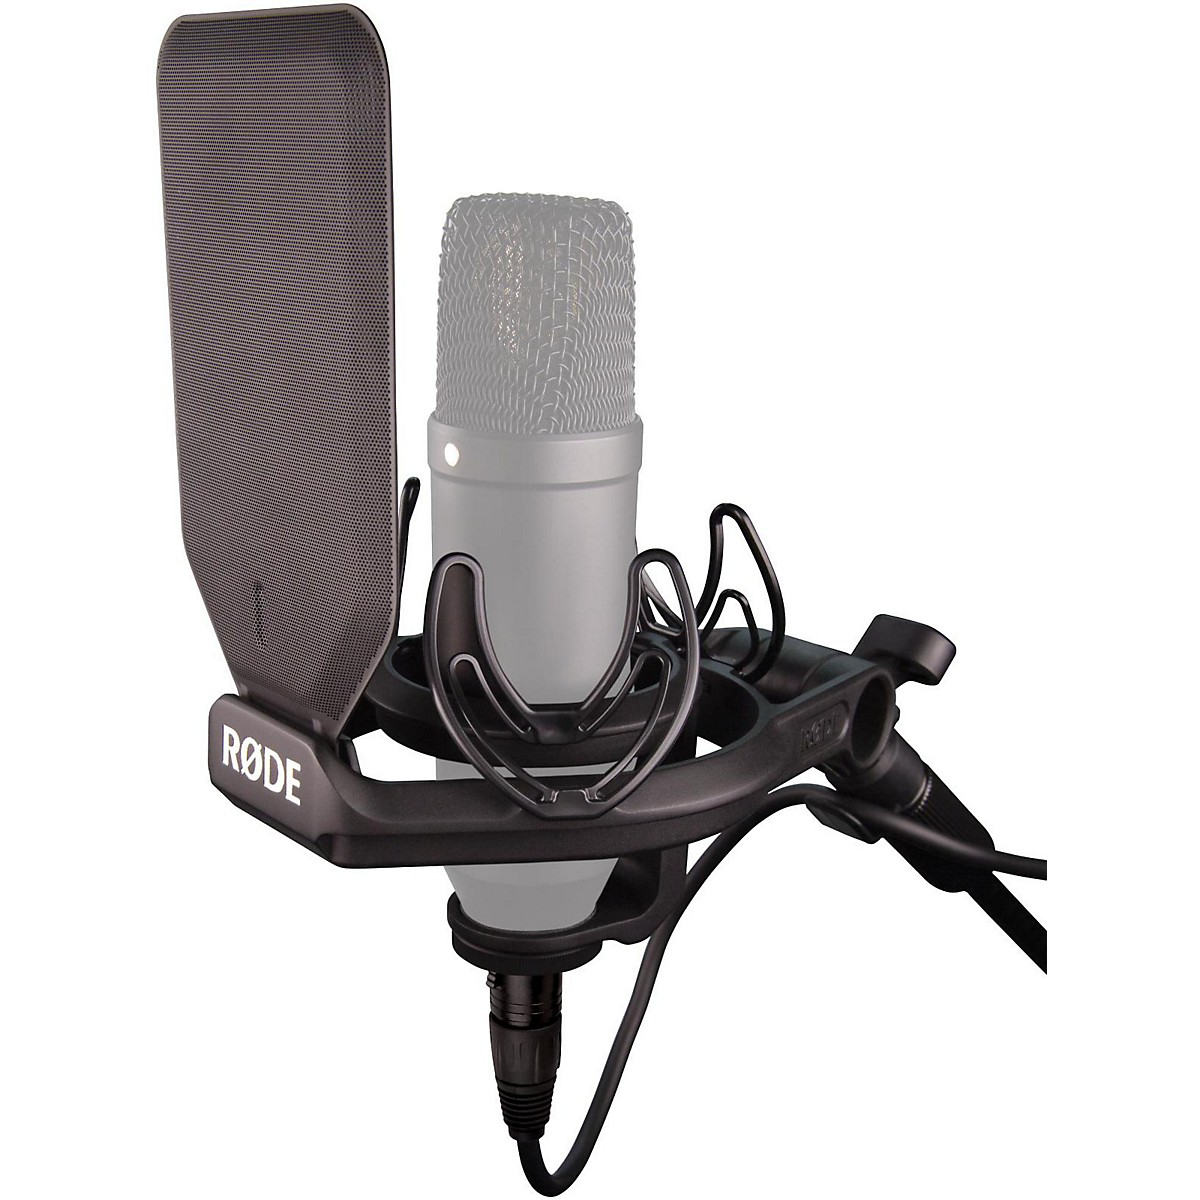 Rode SMR Premium Shock Mount with Rycote Onboard